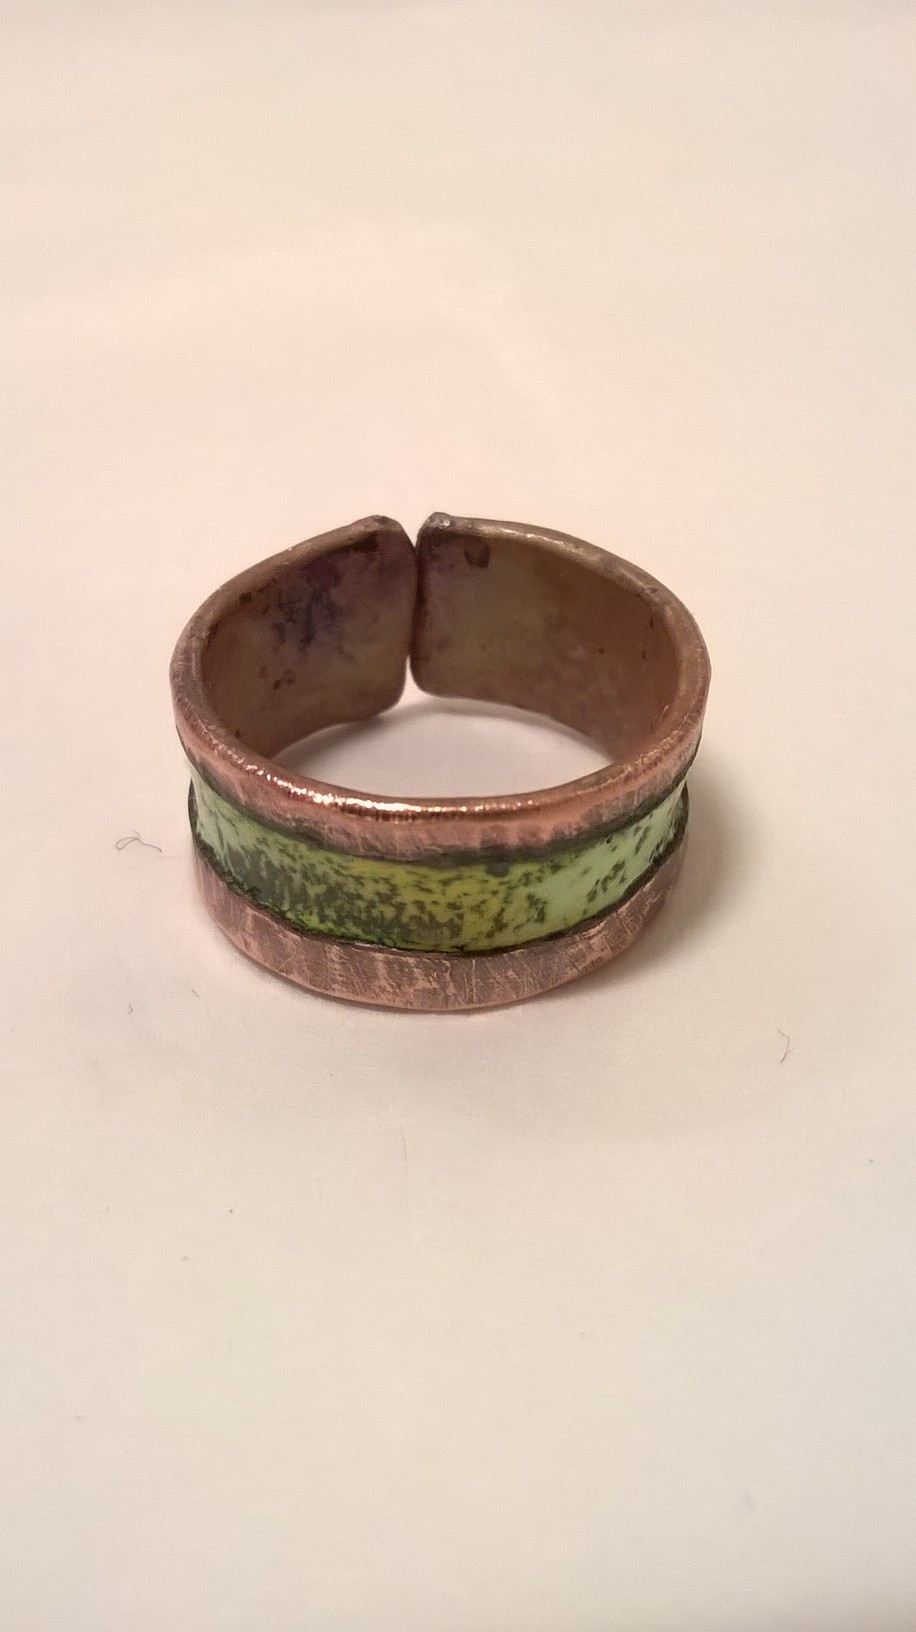 Copper and Enamel rings by Jason Noble